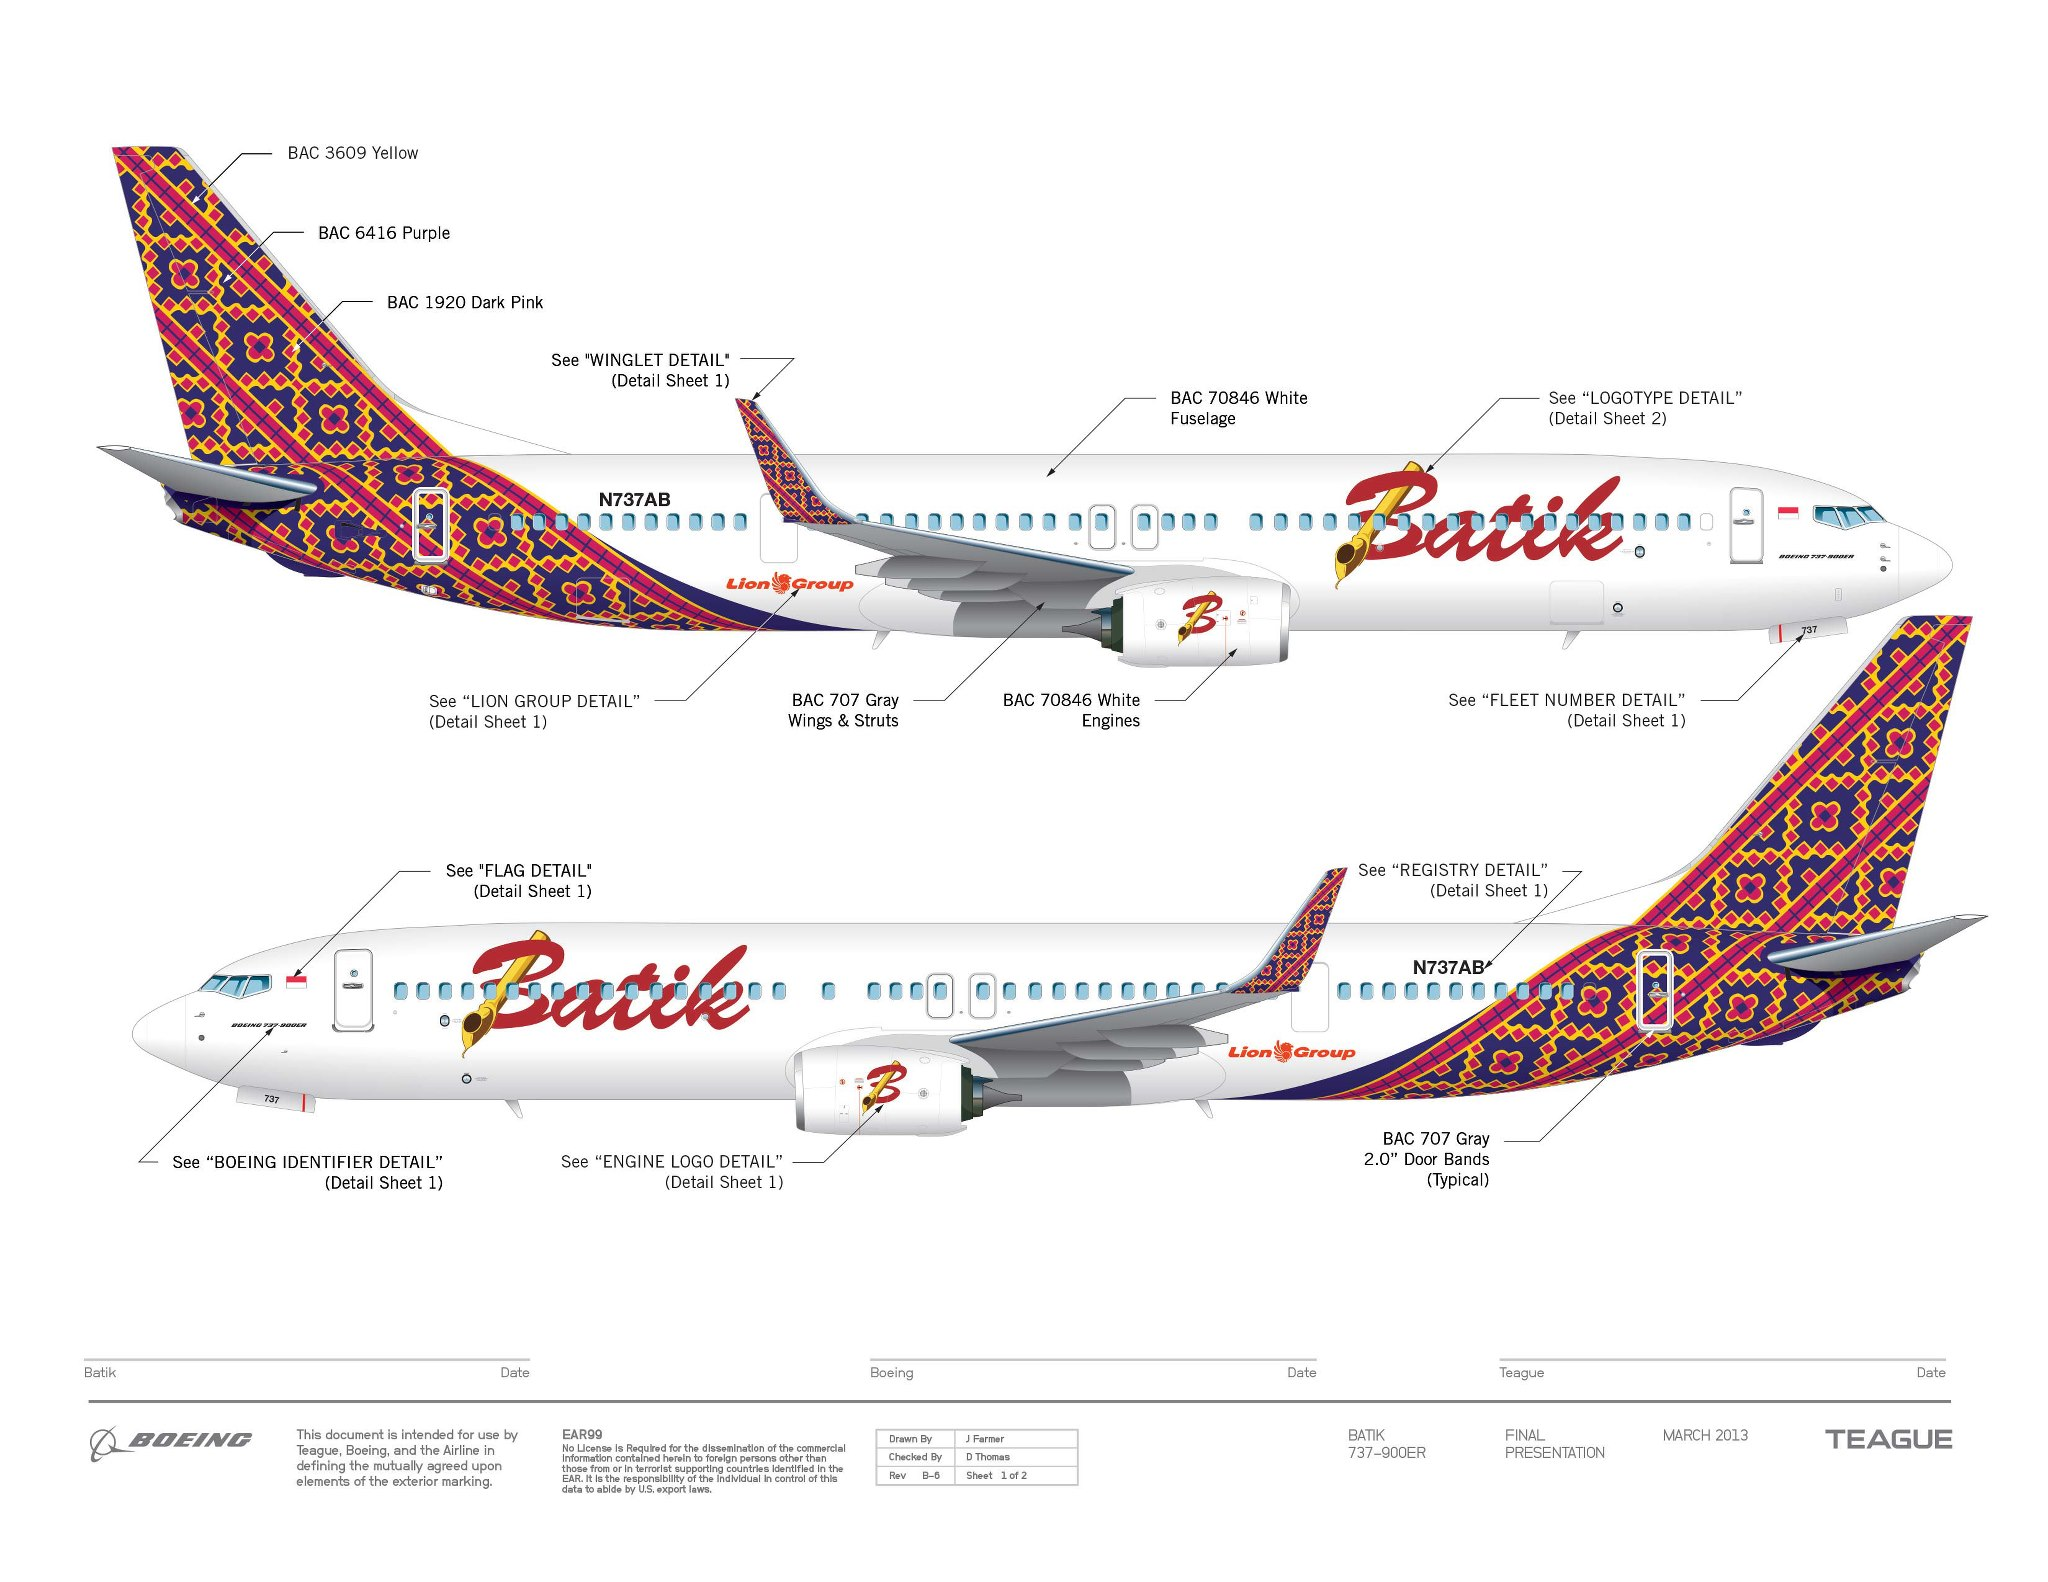 Flight attendant of batik air batik air 1 gallery airline 904119533715586681007754815194og stopboris Image collections